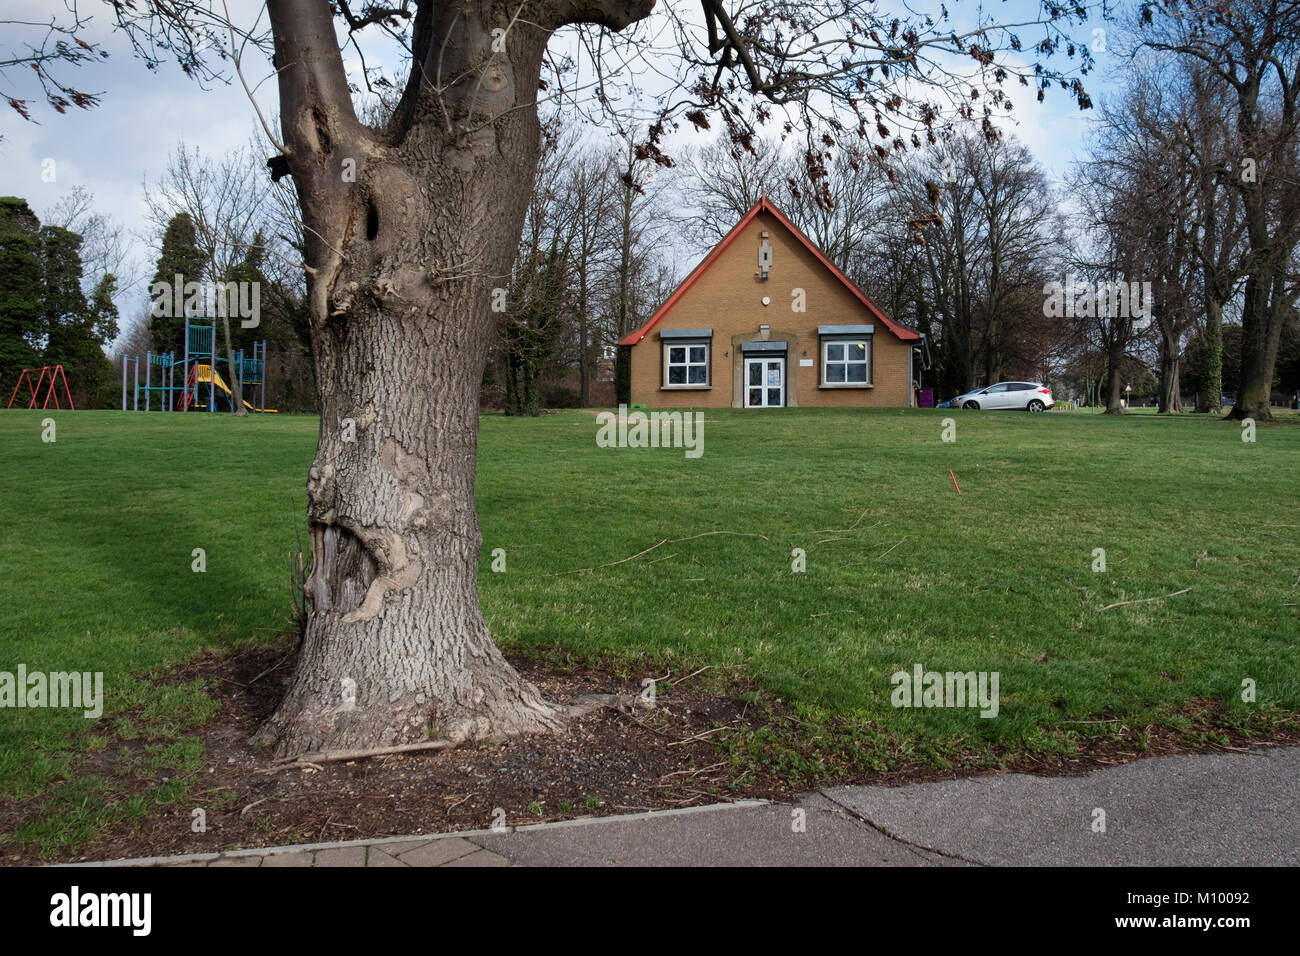 Essex,UK. West Thurrock Children's Centre Purfleet with playground with swings & slide. - Stock Image